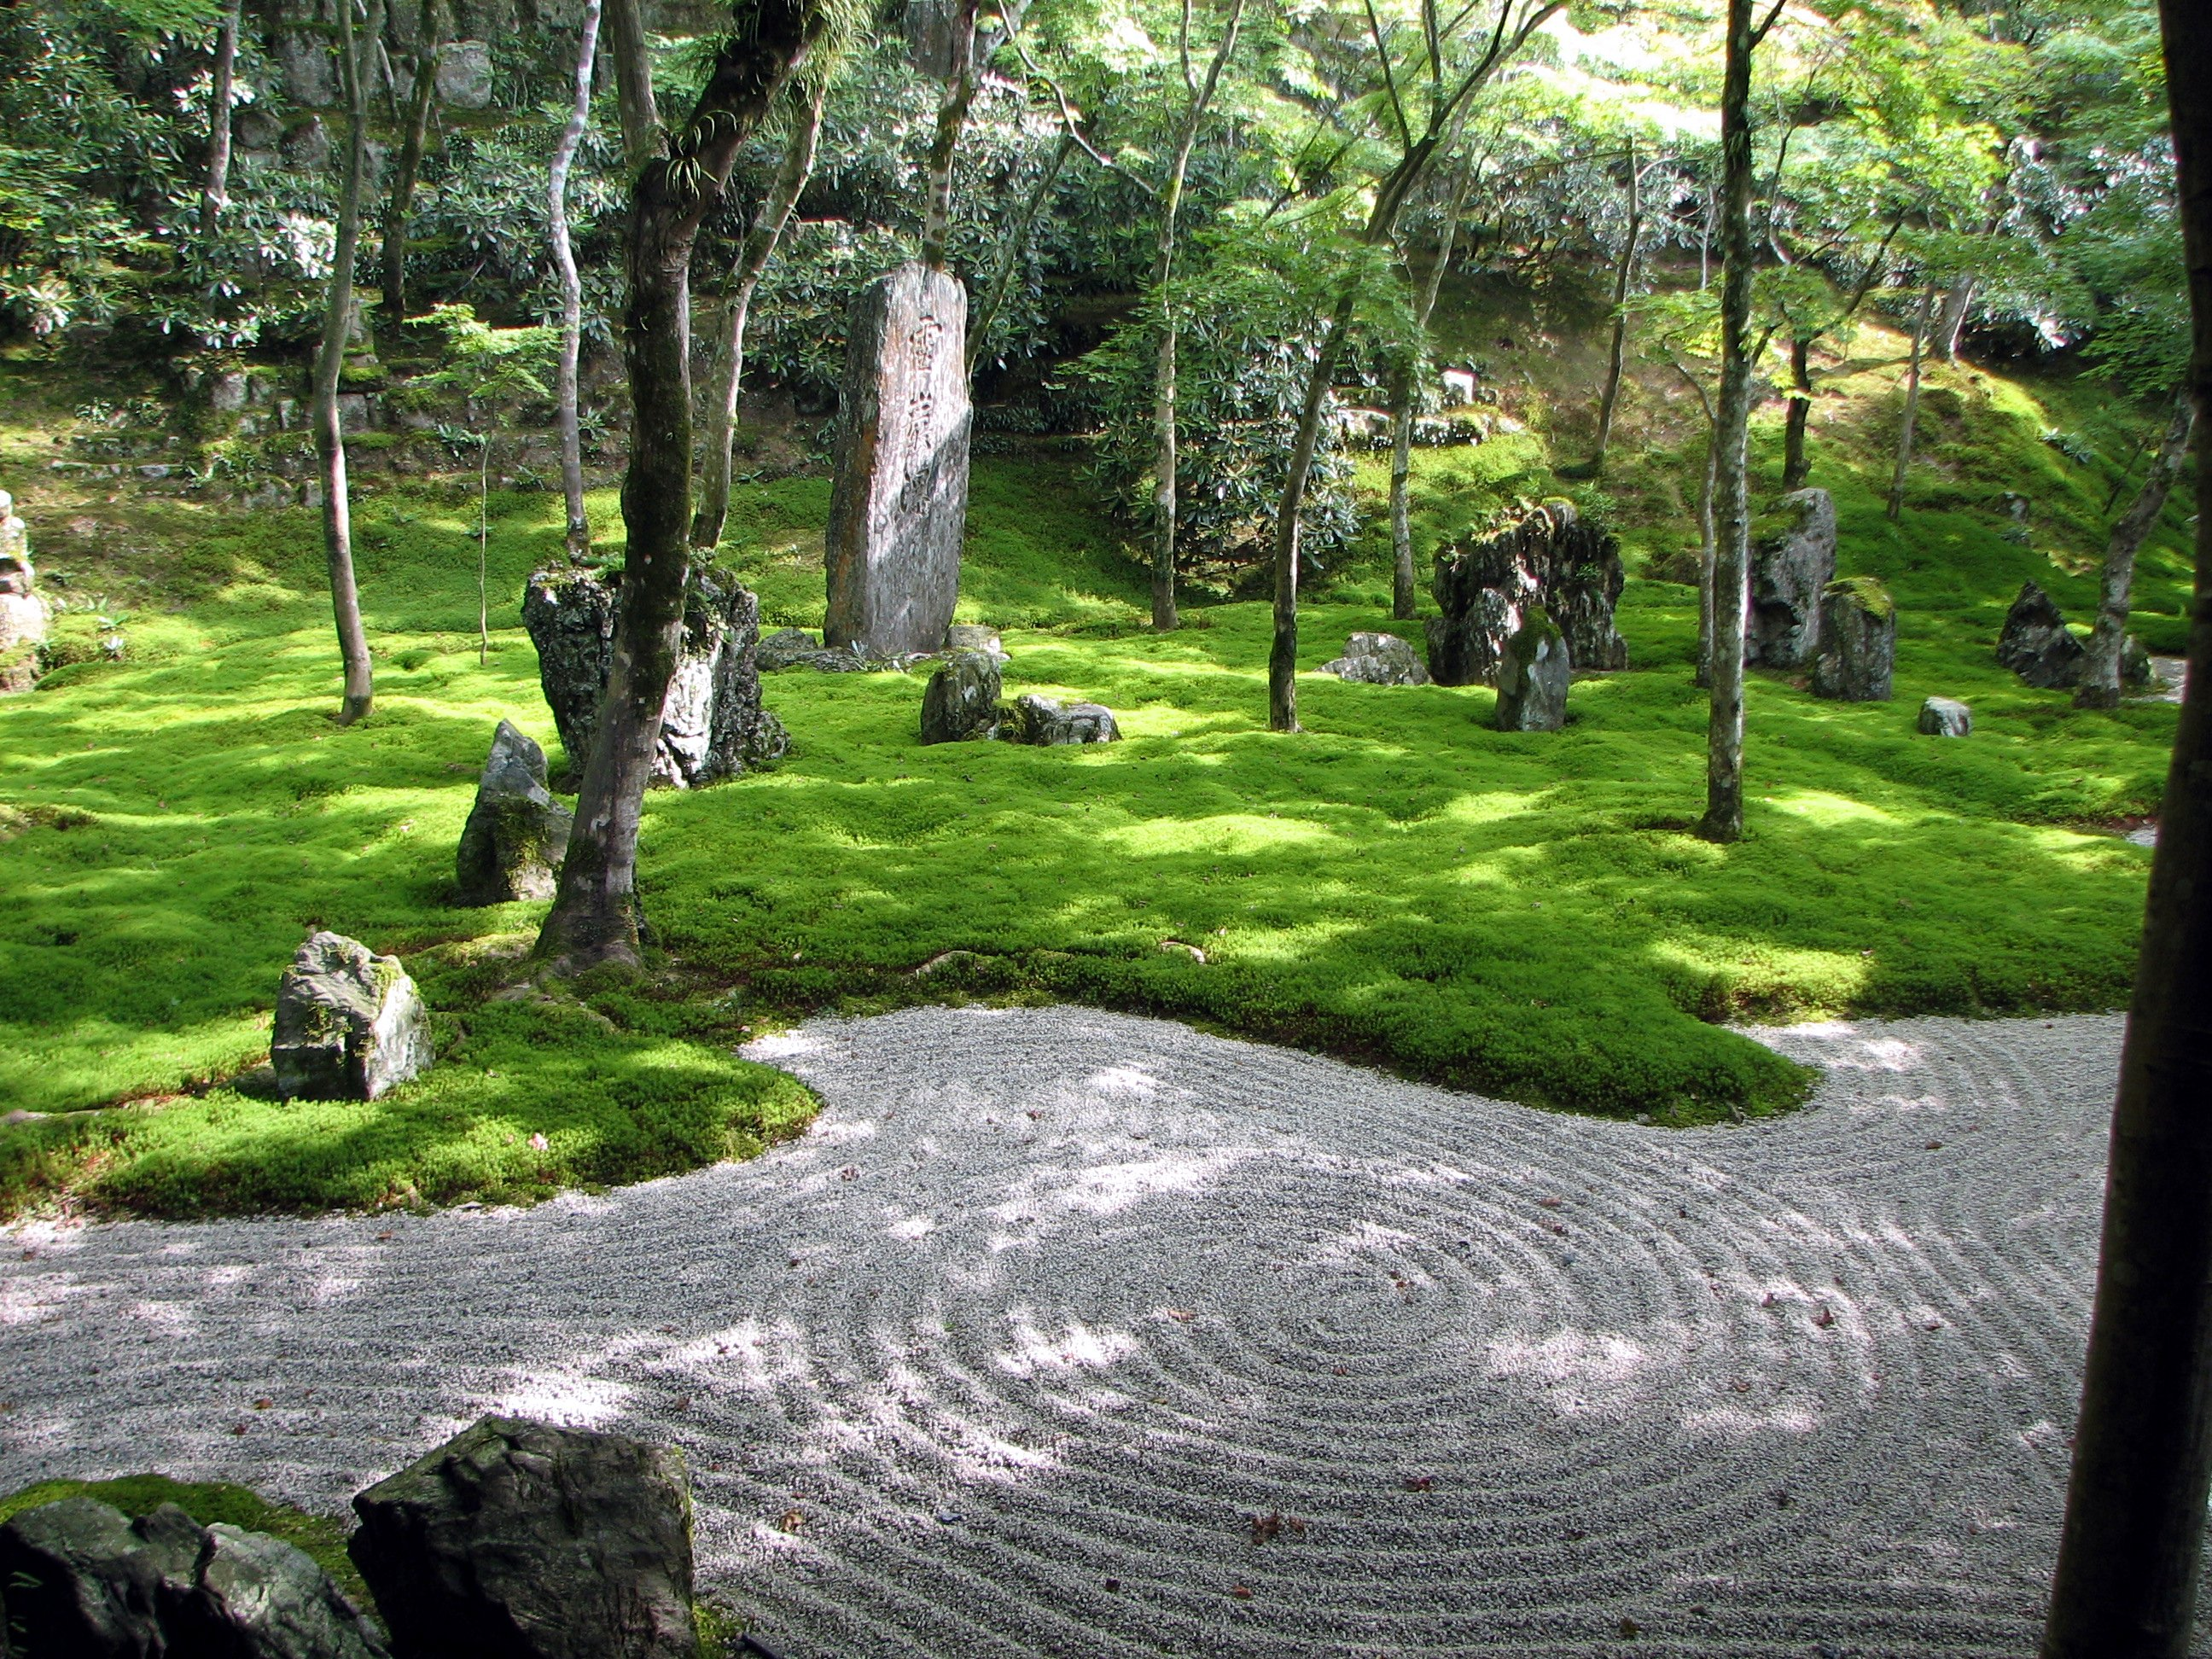 Zen rock garden wallpaper - Zen Garden Wallpaper Hd 12 Freetopwallpaper Com